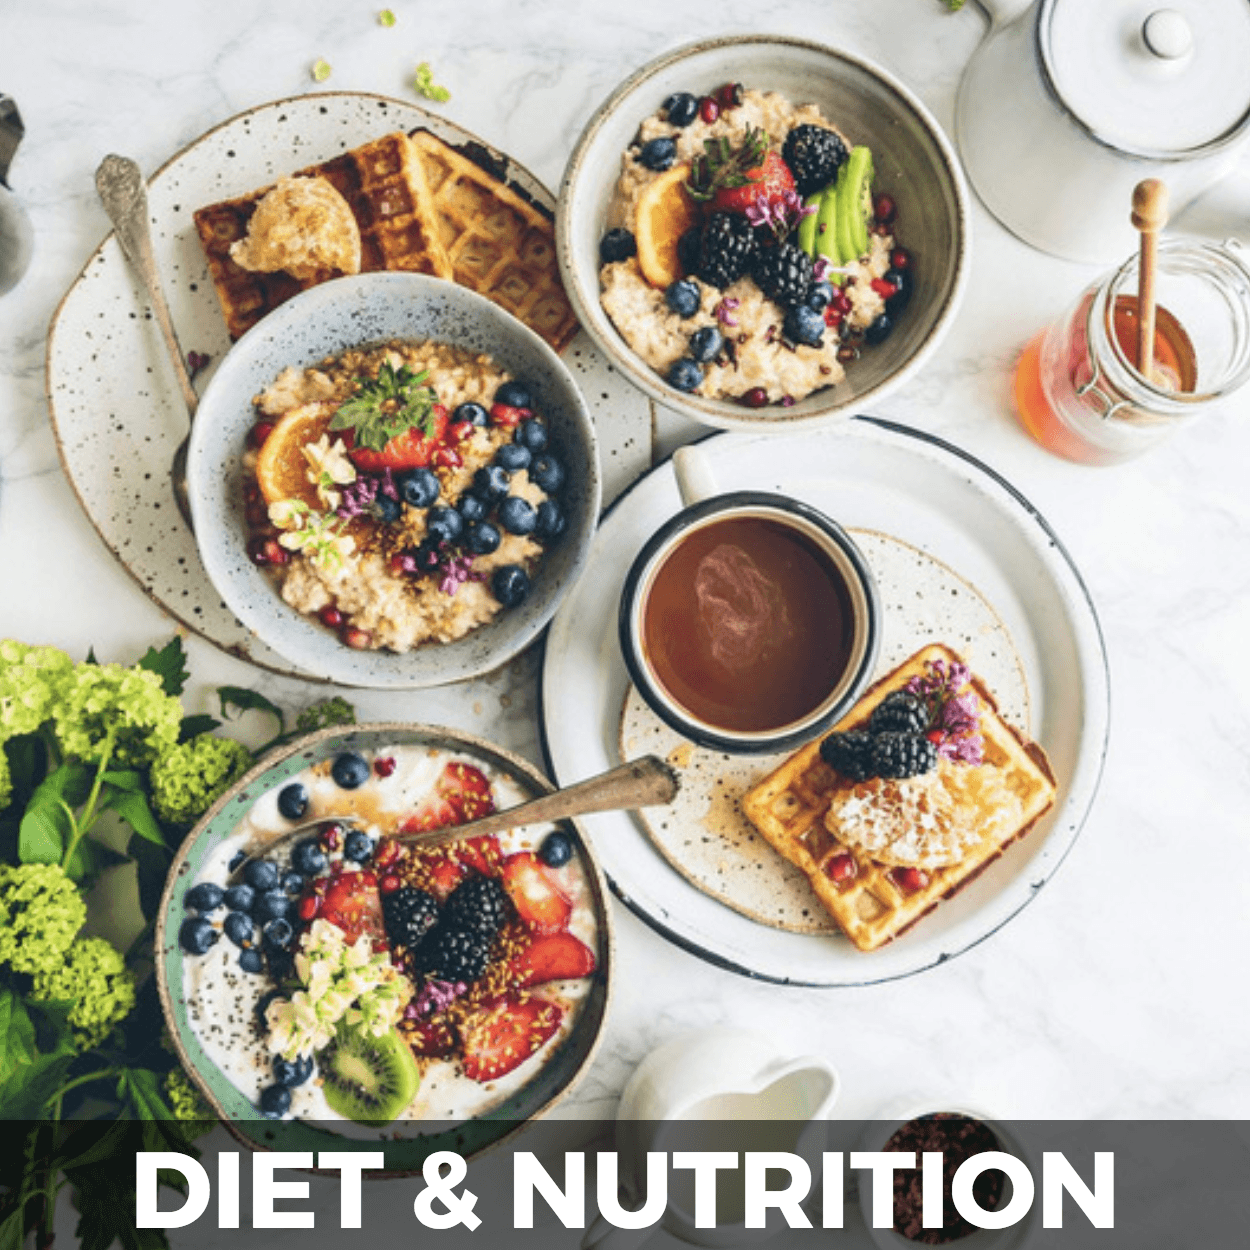 Diet and nutrition